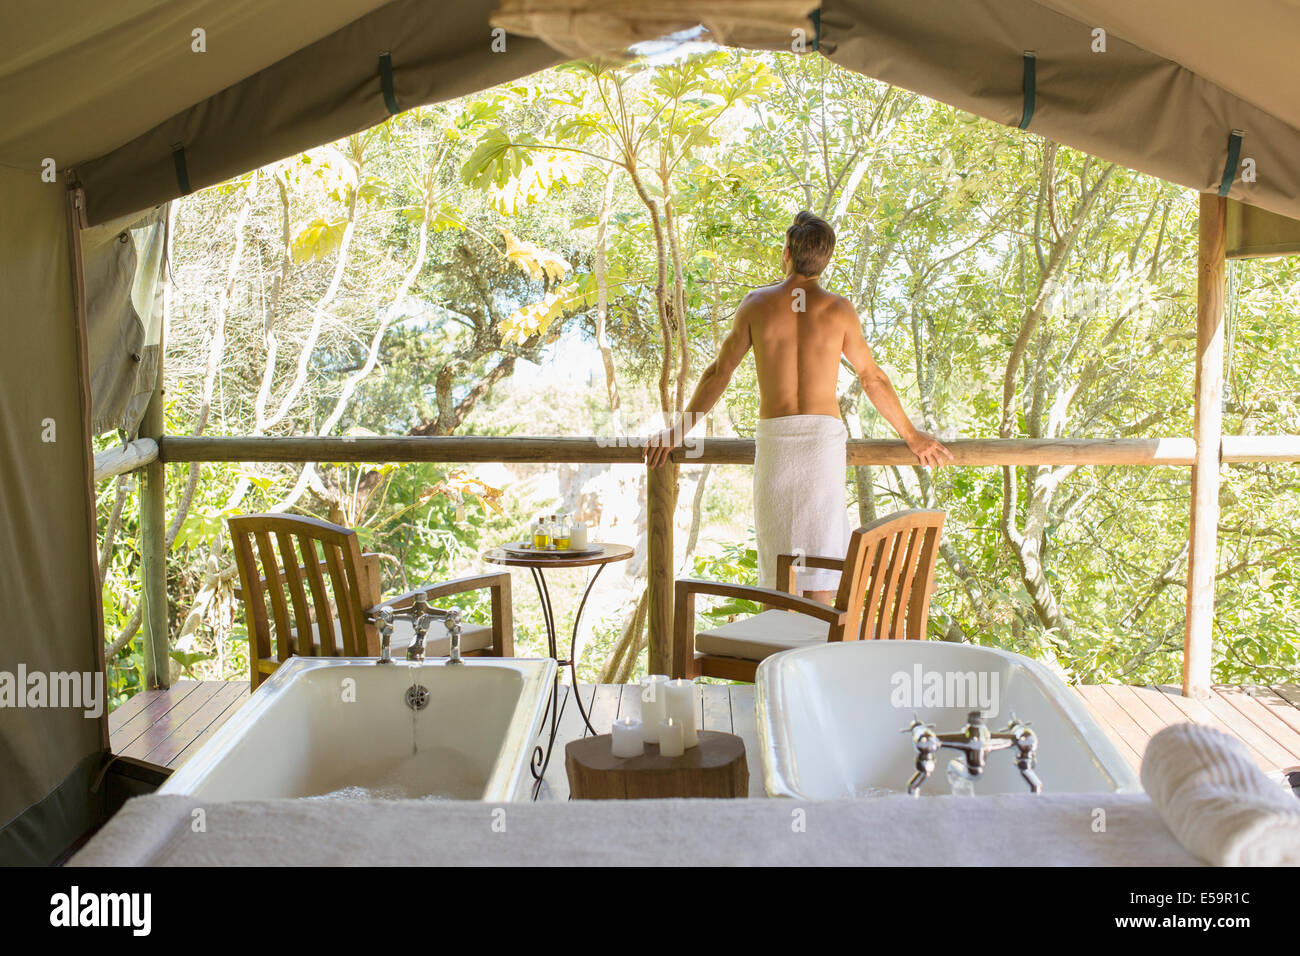 Man standing in ornate outdoor spa - Stock Image